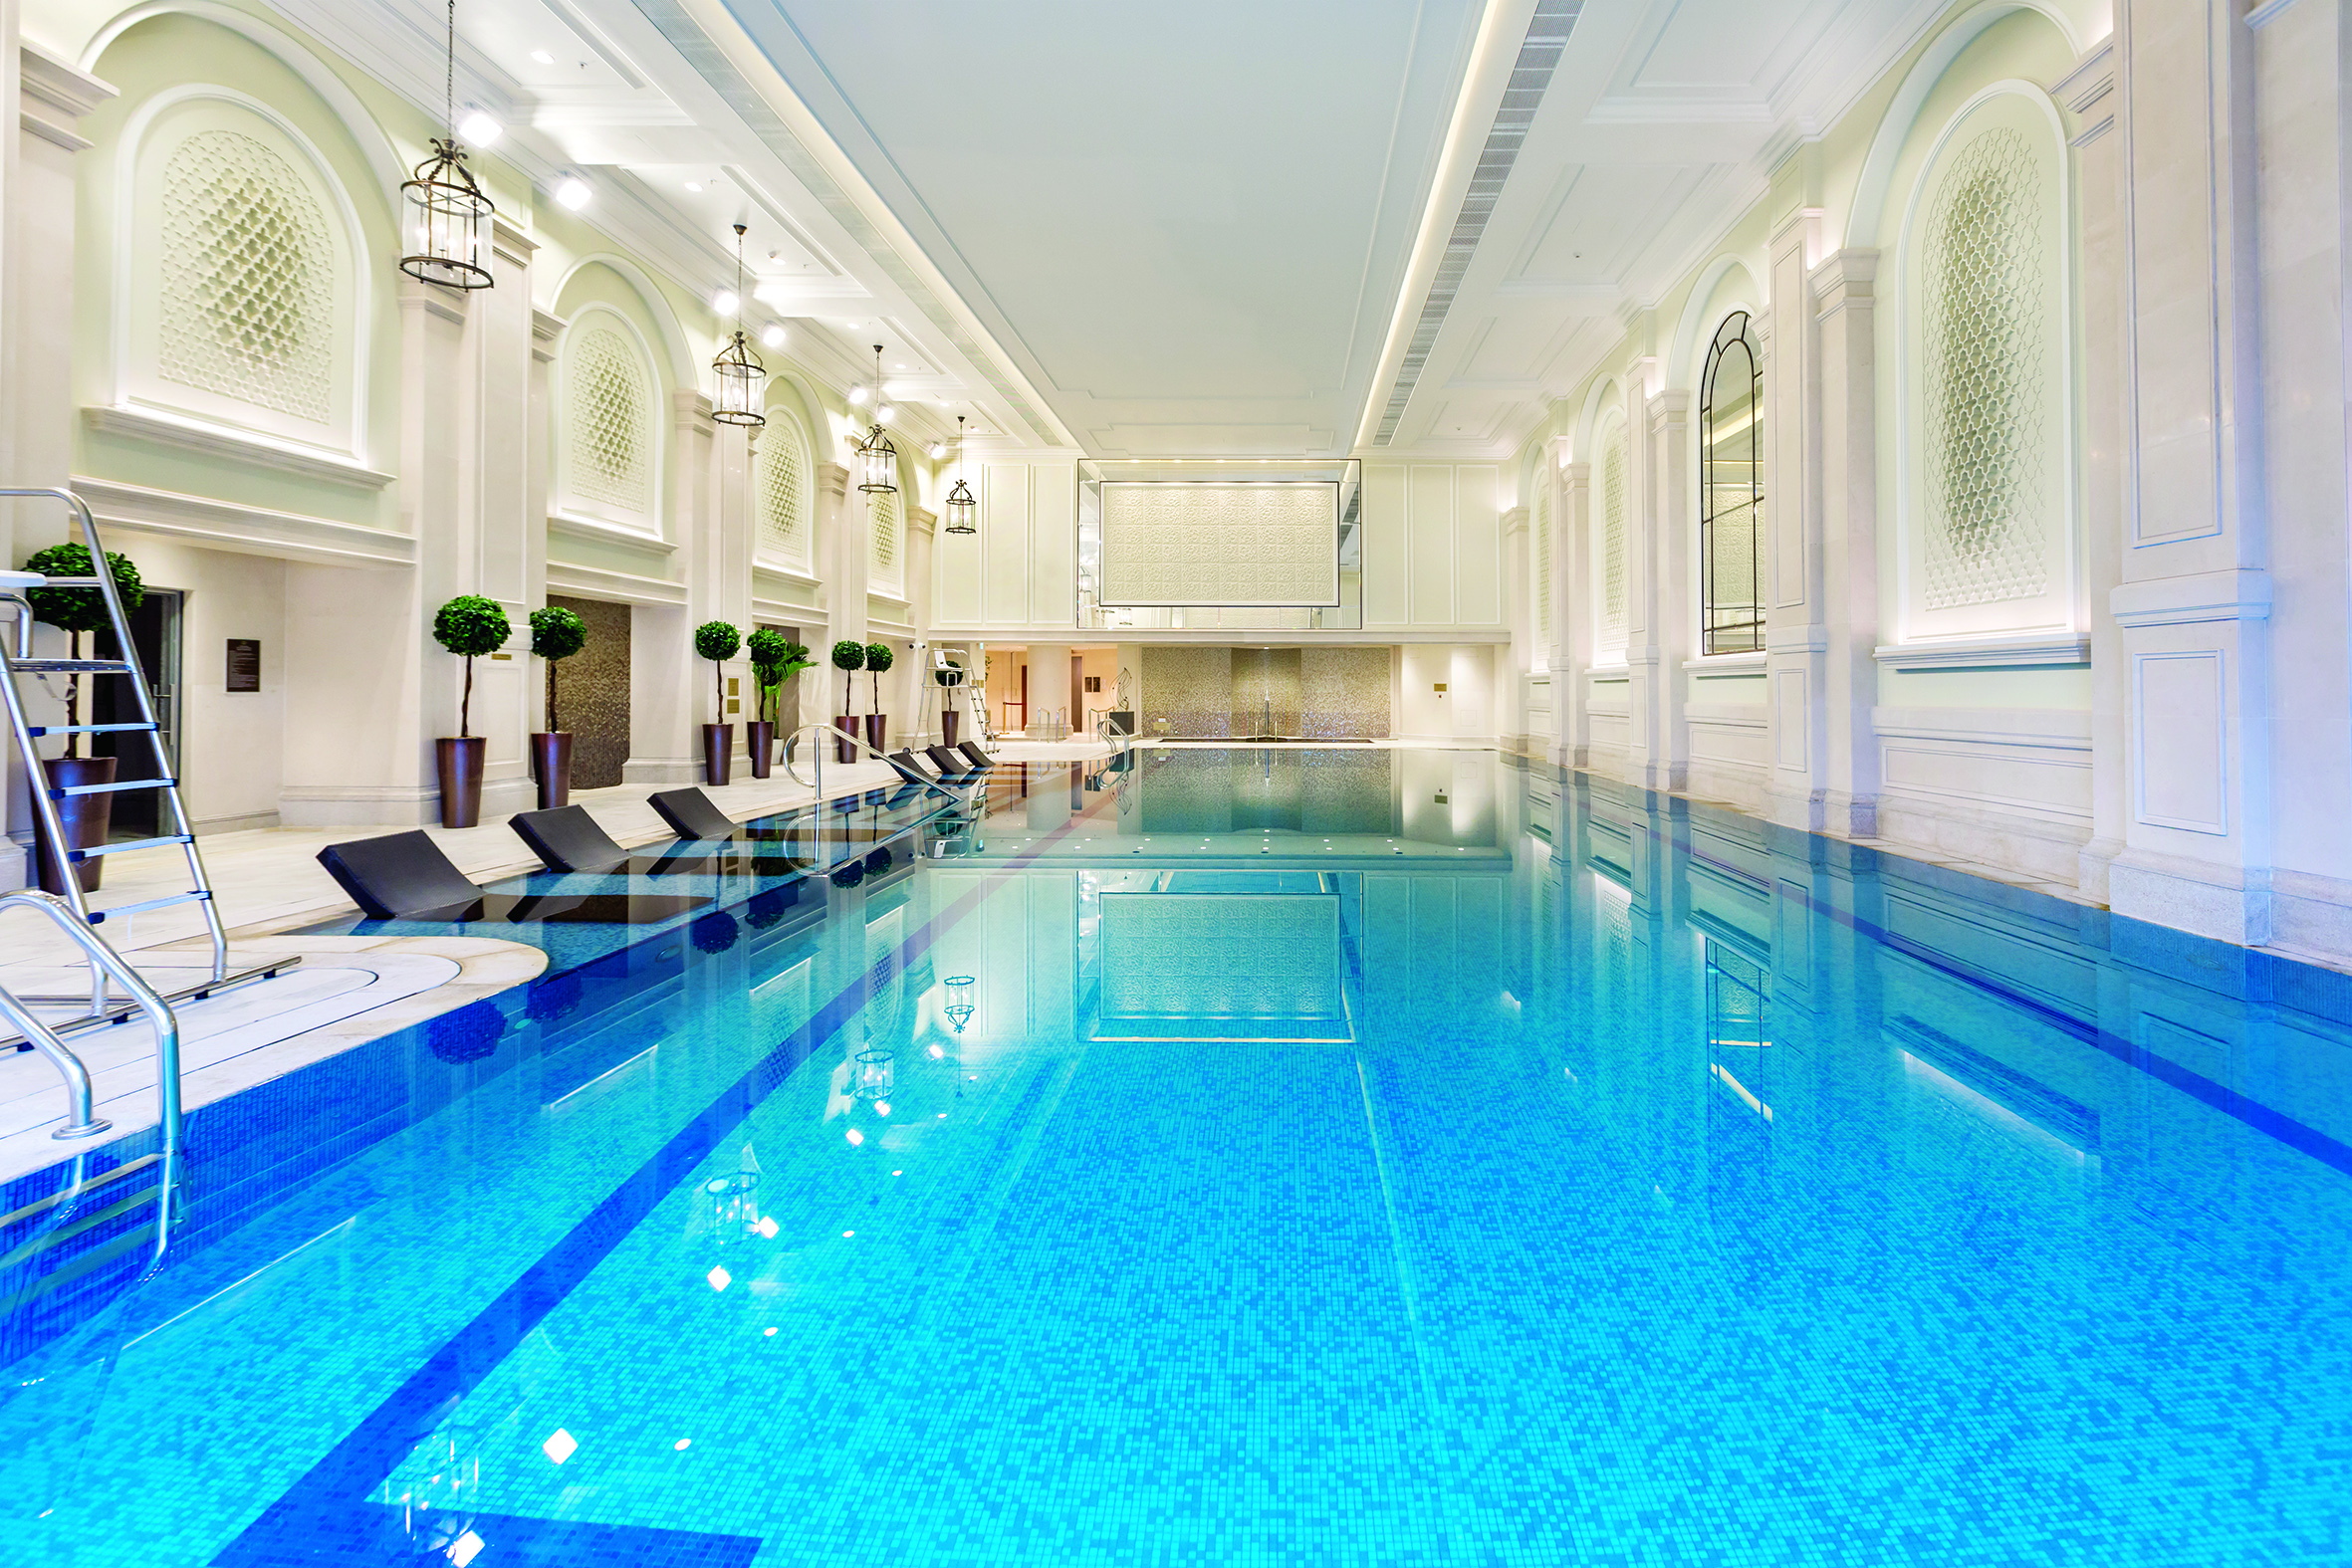 The swimming pool at Mayfair by the Sea